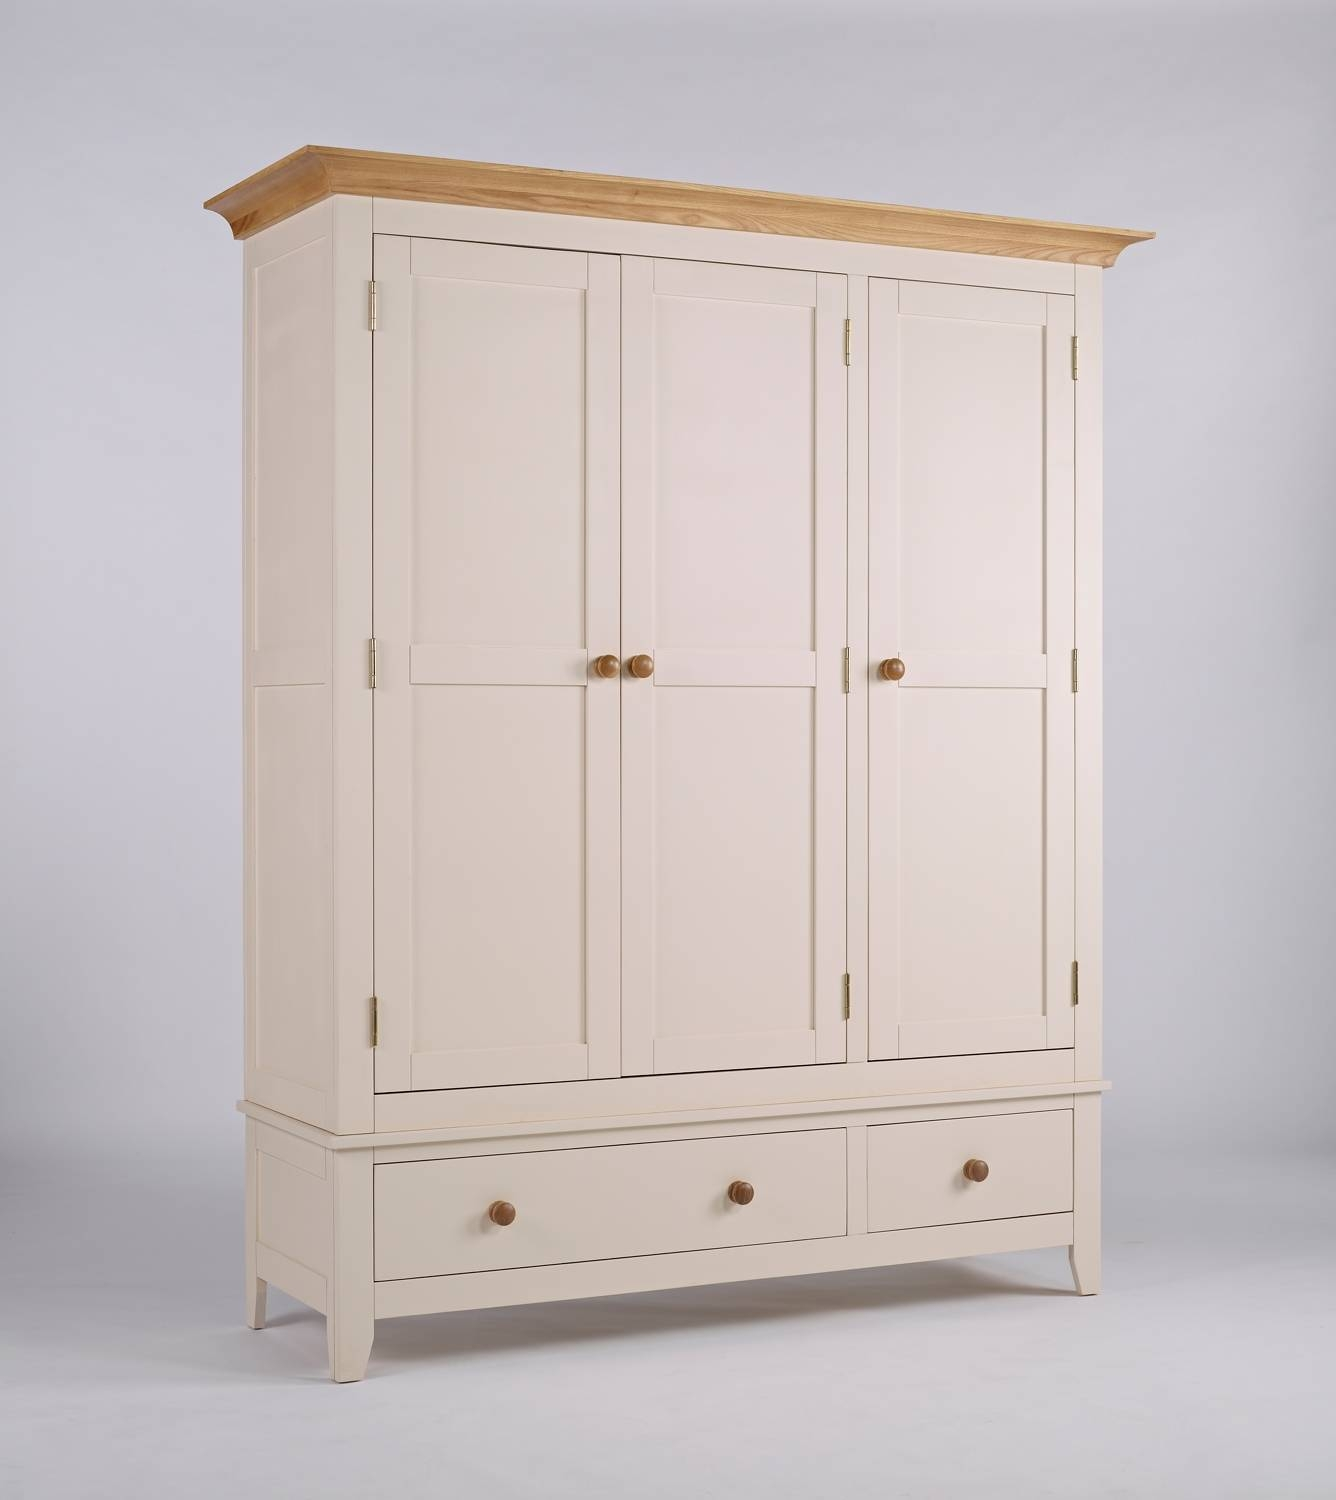 New England Ivory Large Wardrobe | Hampshire Furniture in Ivory Wardrobes (Image 13 of 15)